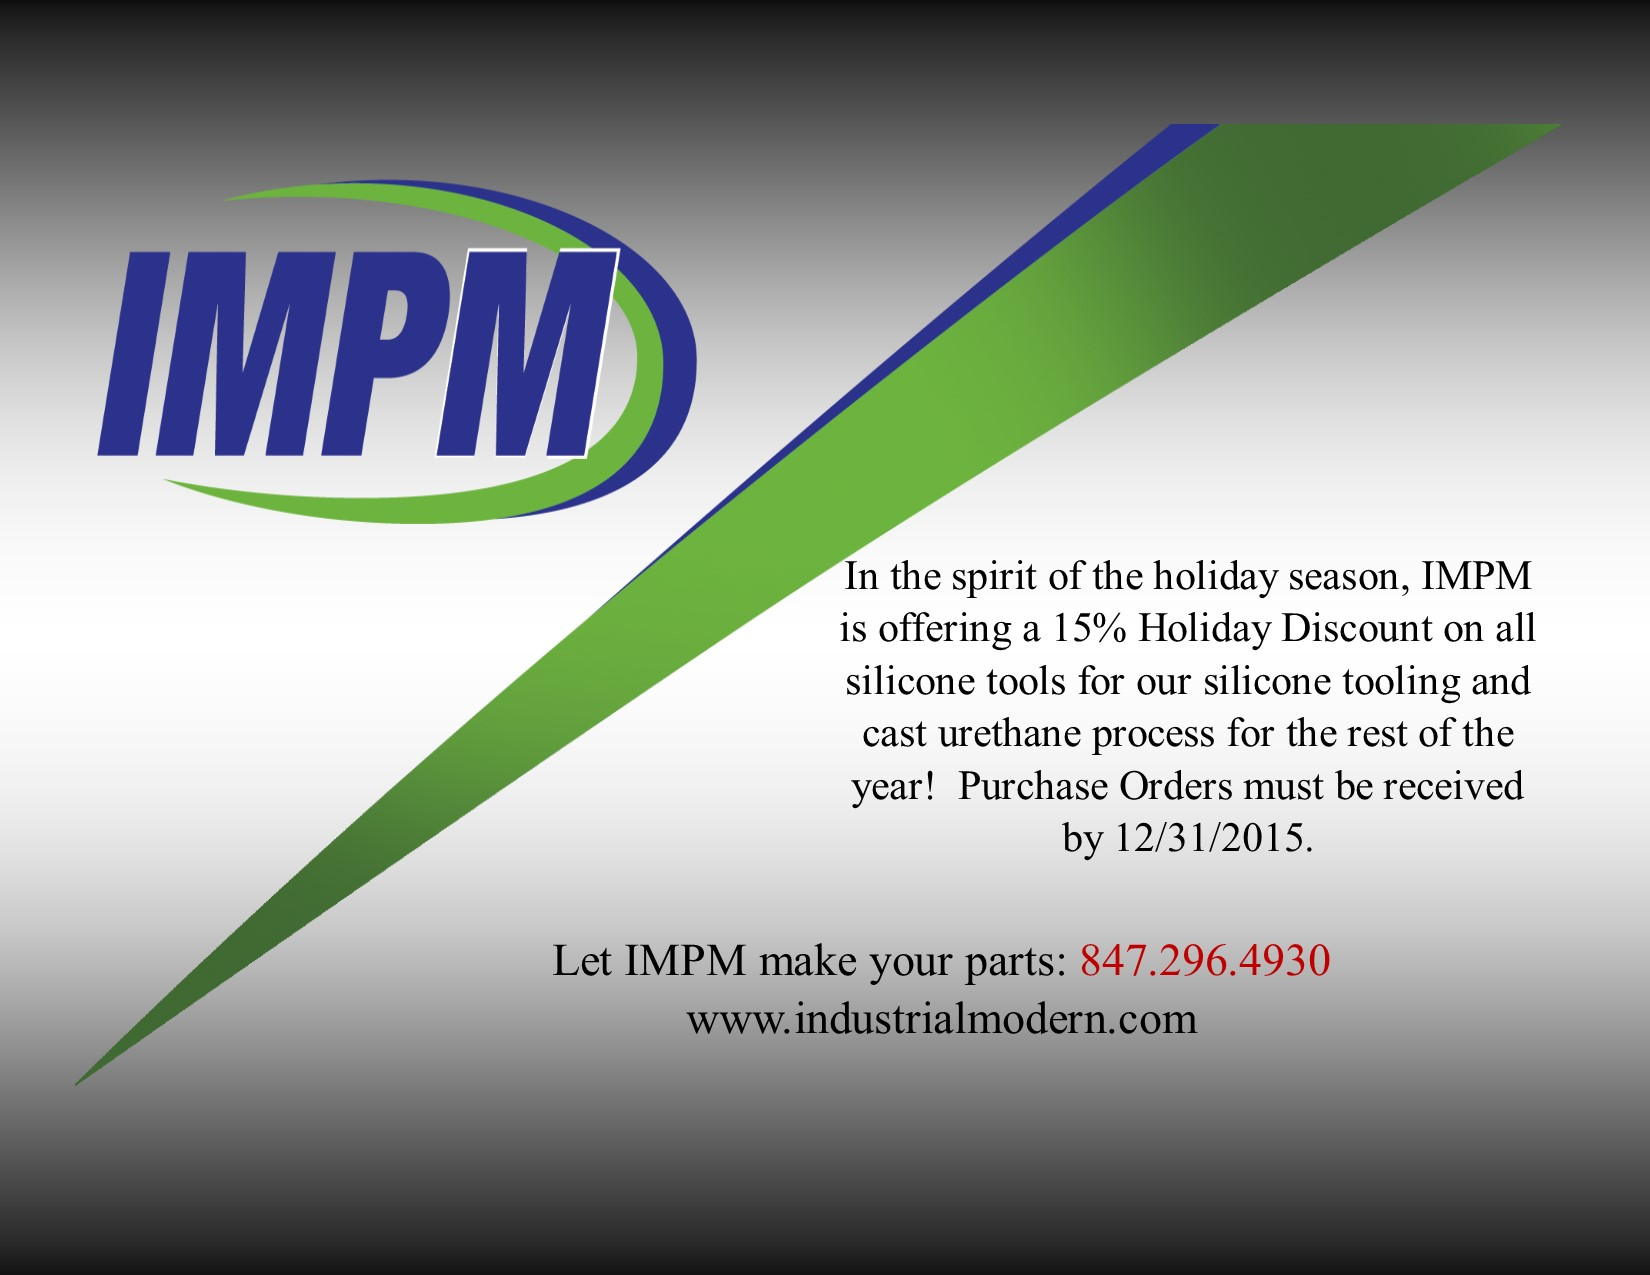 2015 Holiday Discount